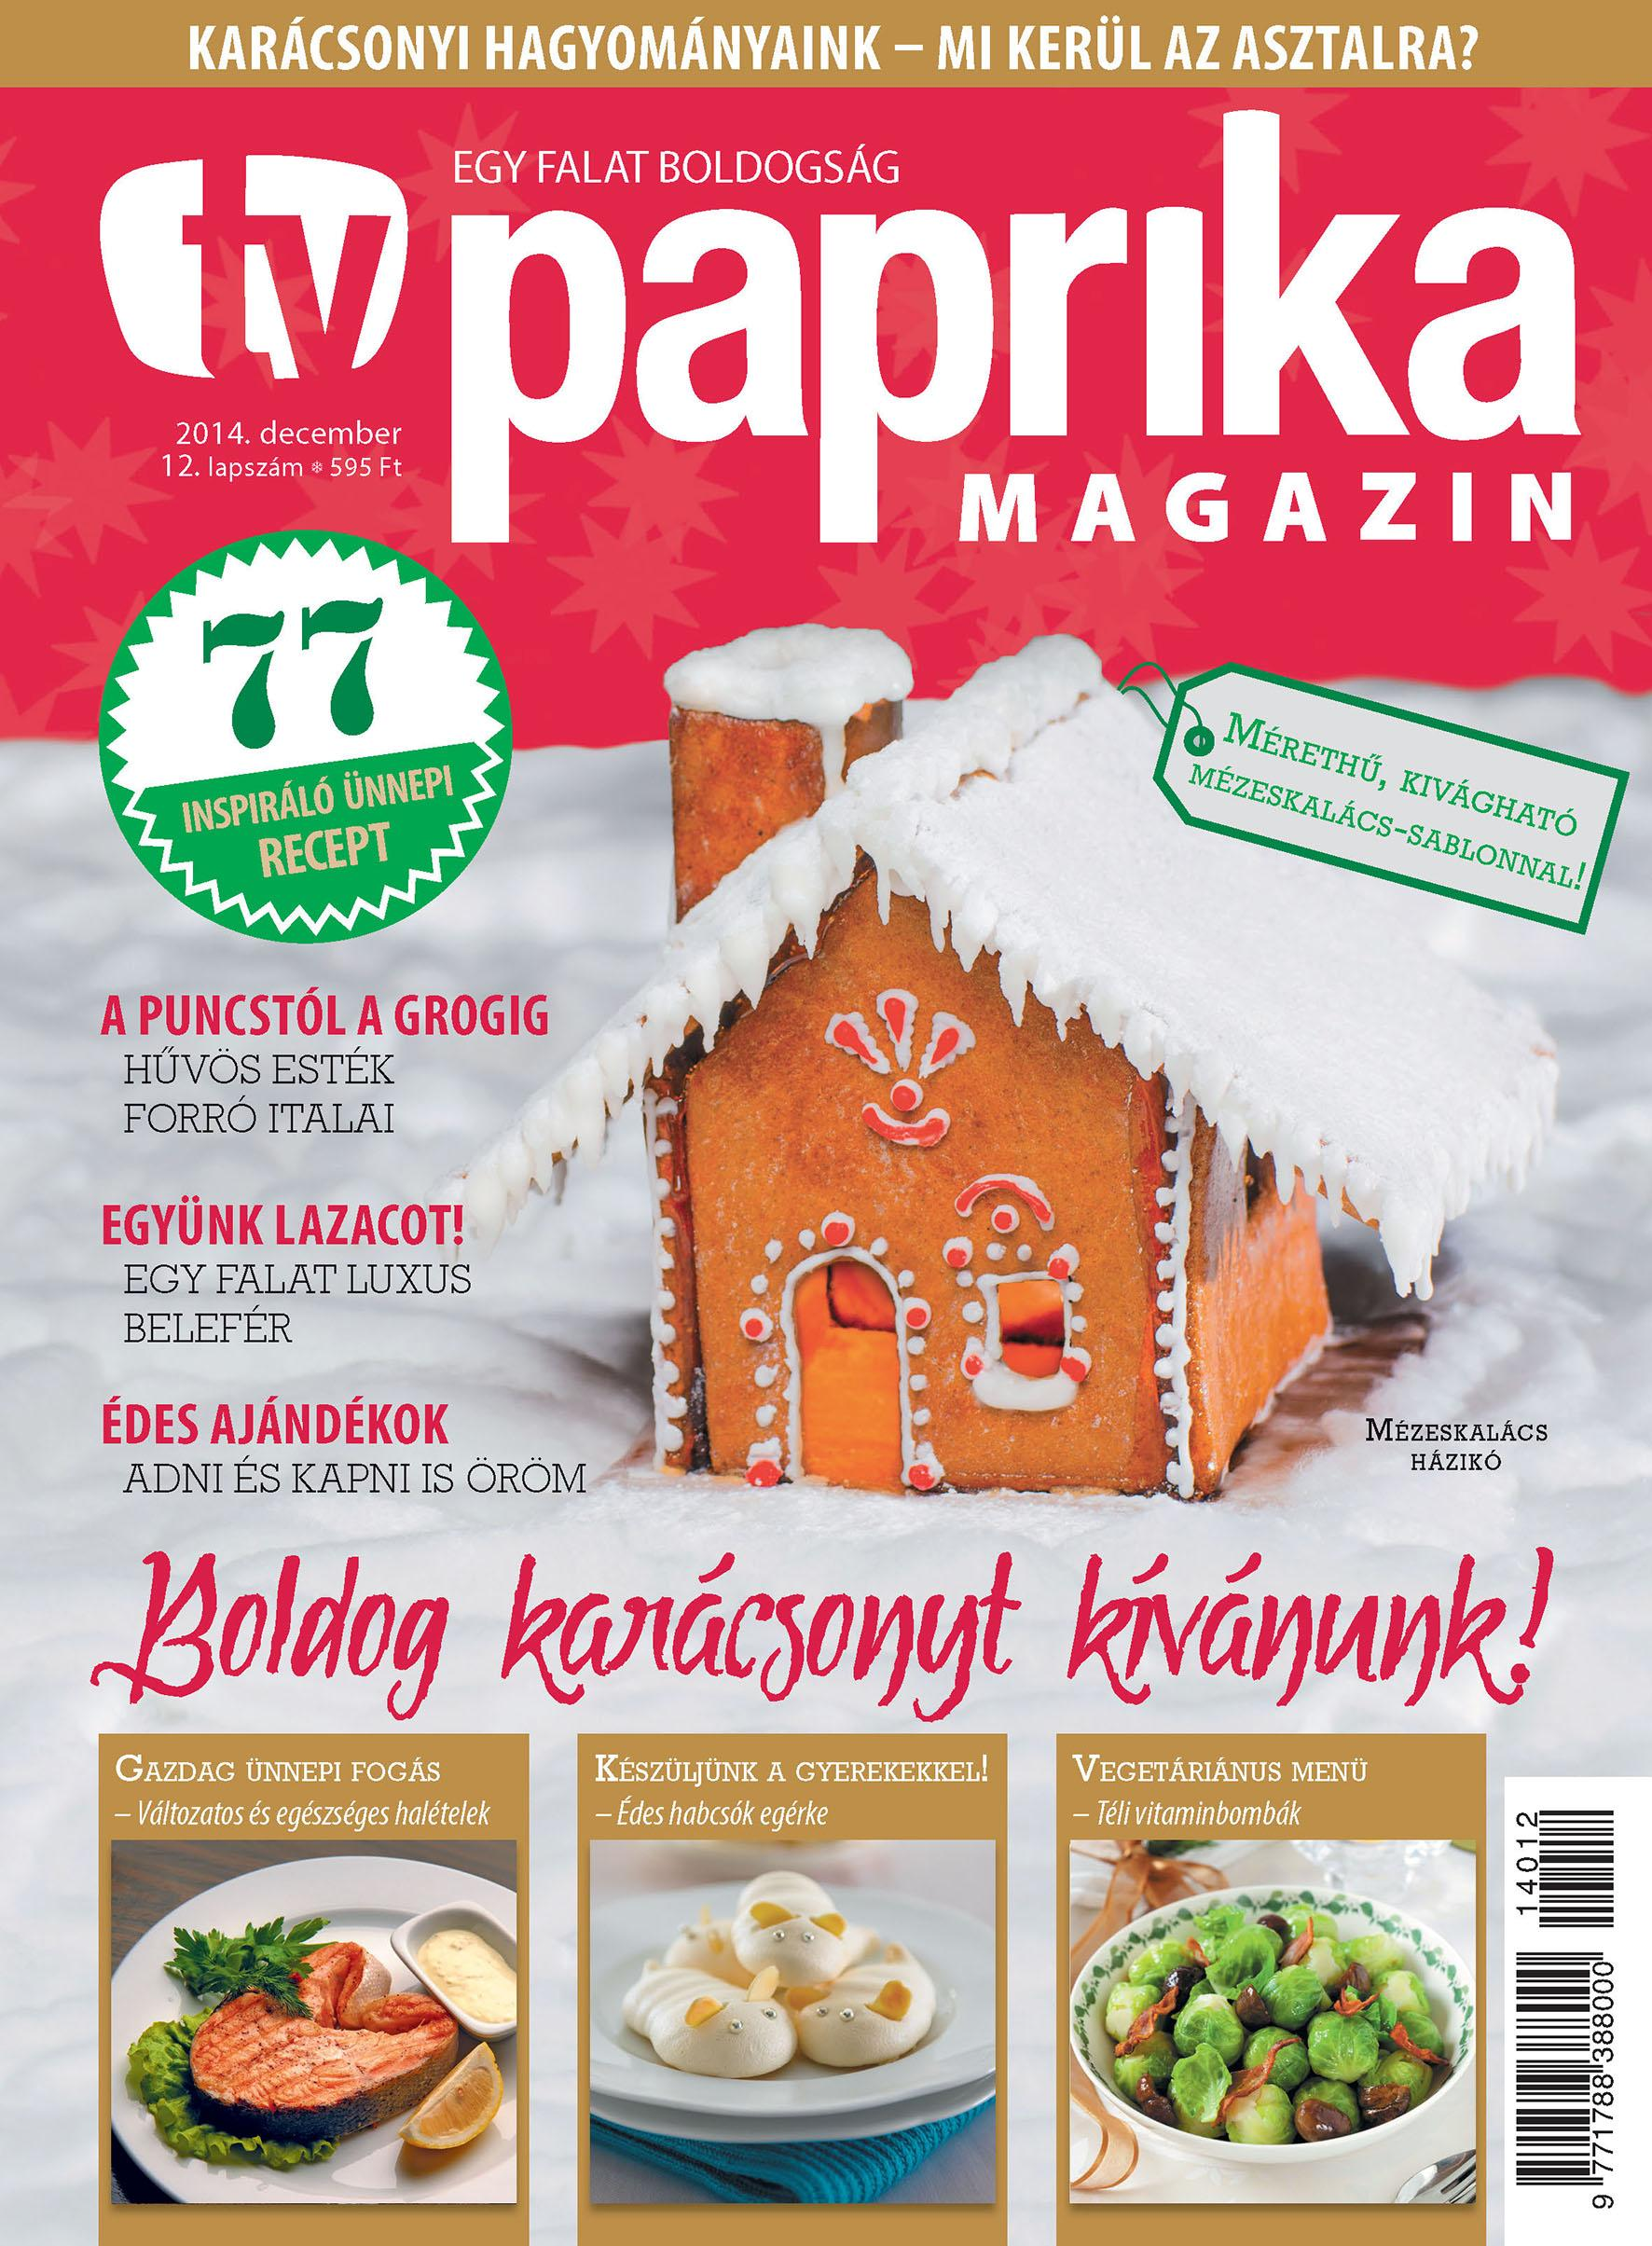 TV PAPRIKA MAGAZIN - 2014. DECEMBER